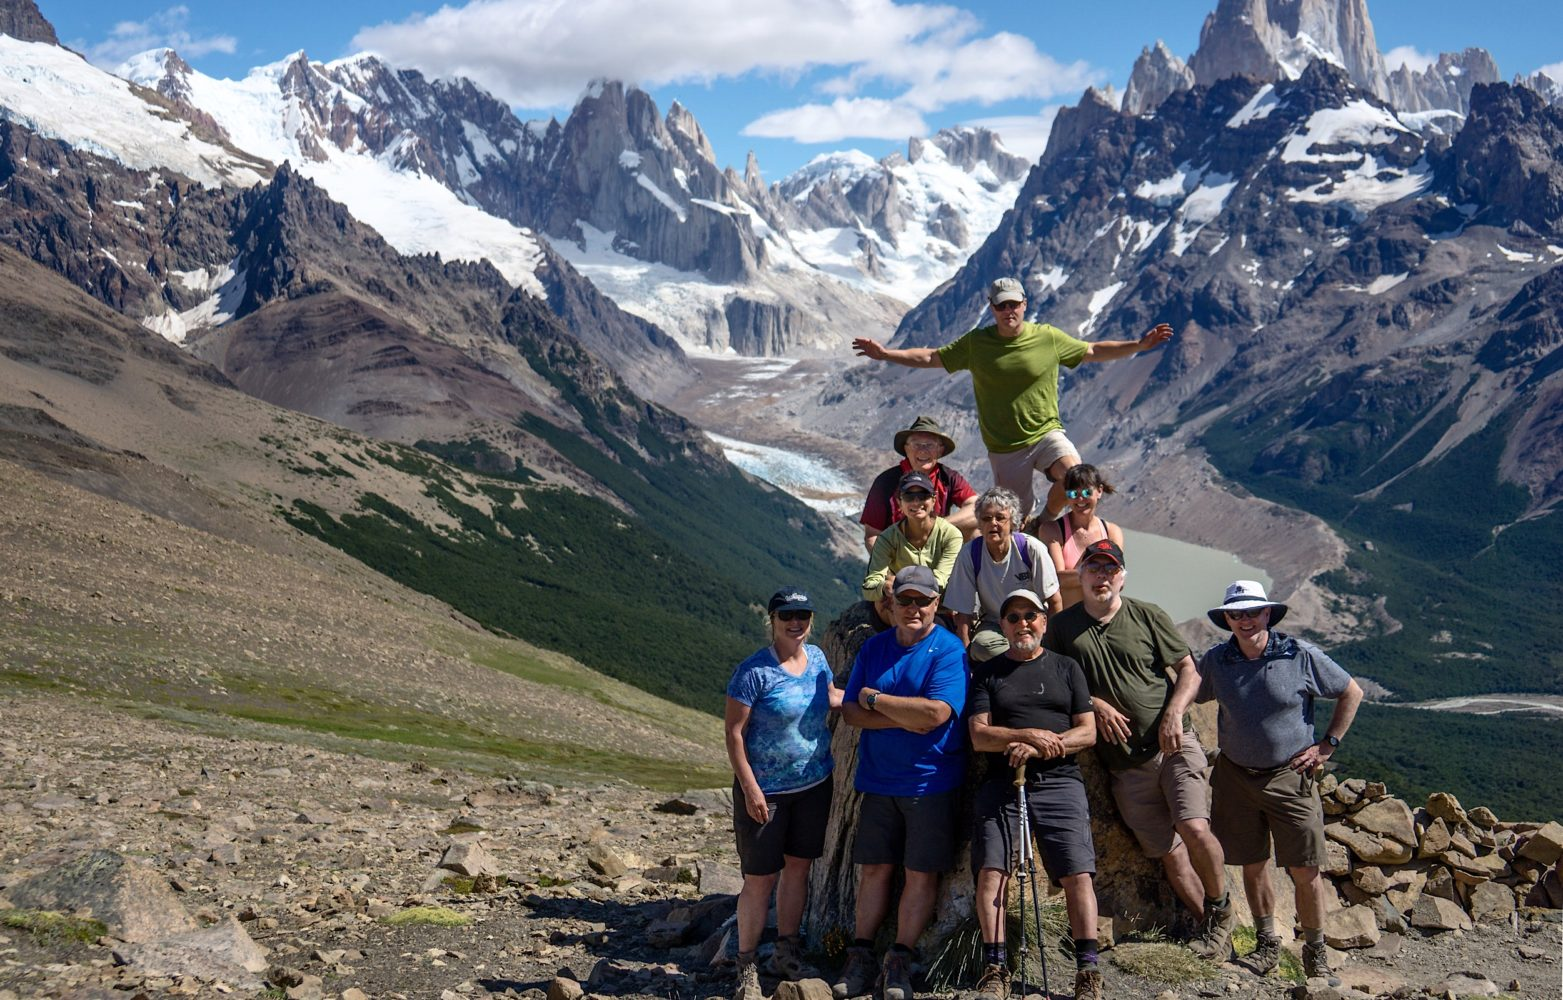 'Condor' Patagonia Hiking Adventure